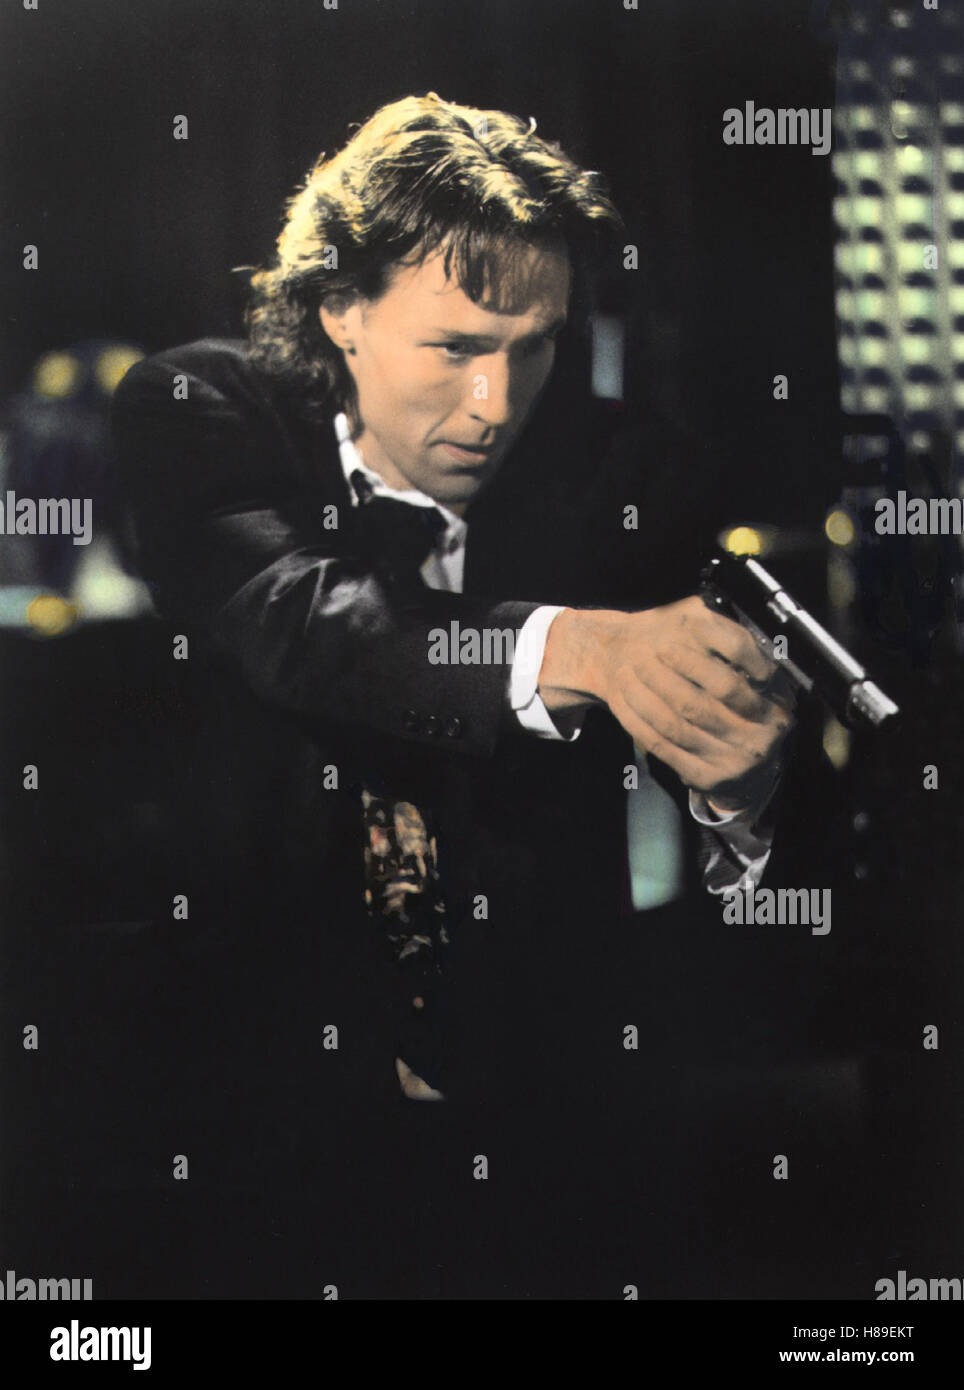 Excessive Force - Im Sumpf der Gewalt, (EXCESSIVE FORCE) USA 1993, Regie: Jon Hess, THOMAS IAN GRIFFITH, Stichwort: - Stock Image